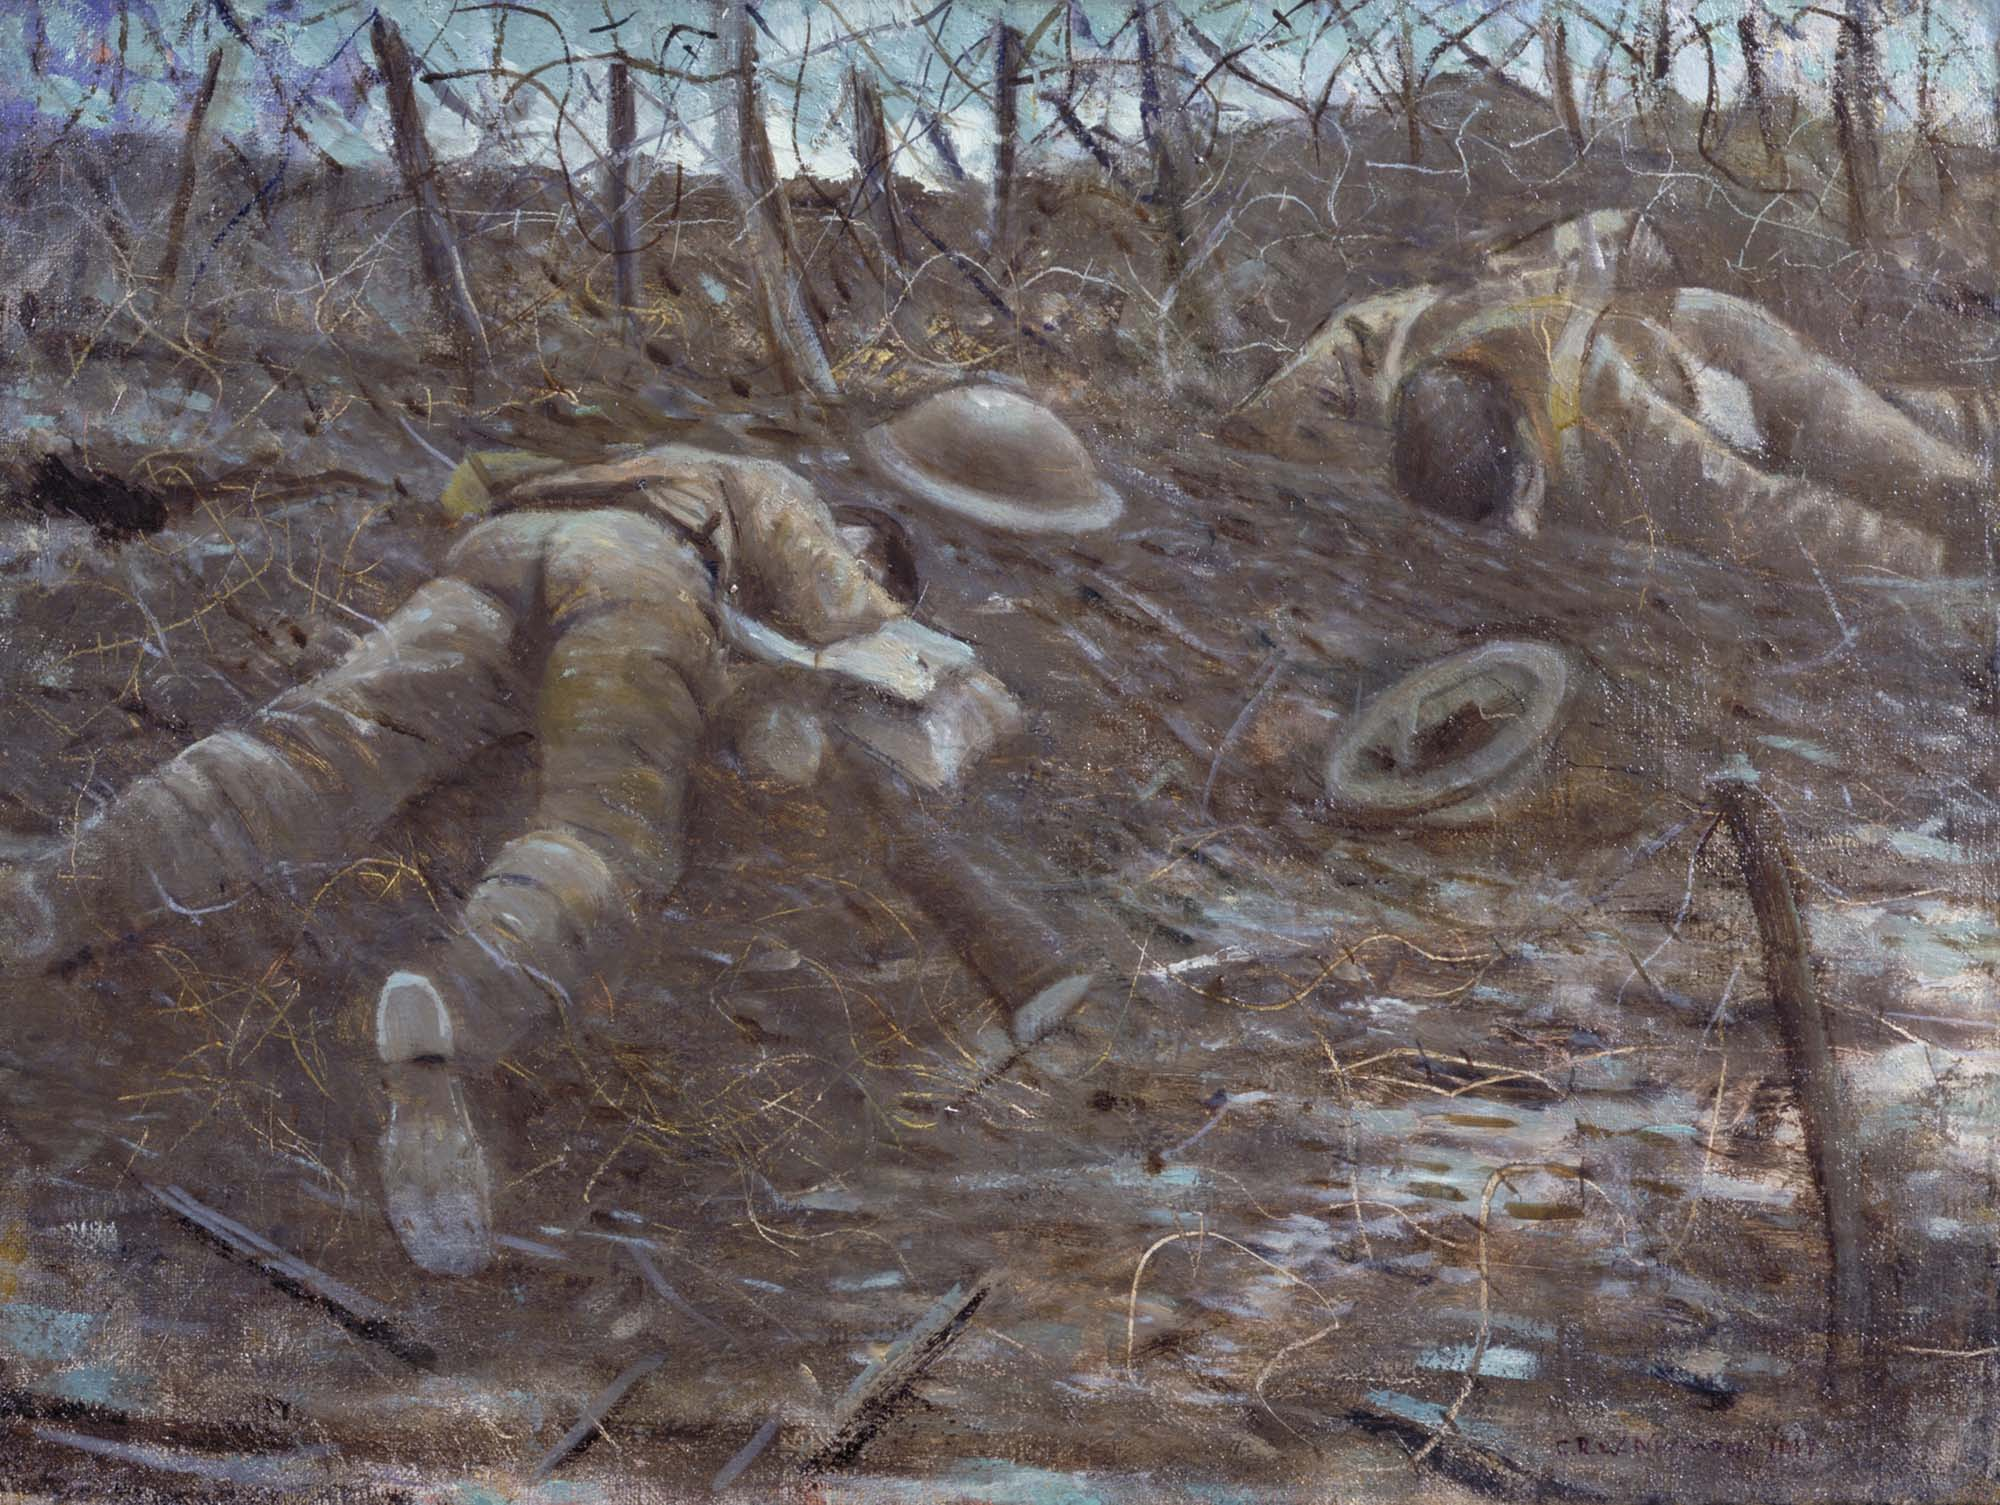 a painting depicting two dead soldiers lying face down in the mud surrounded by barbed wire